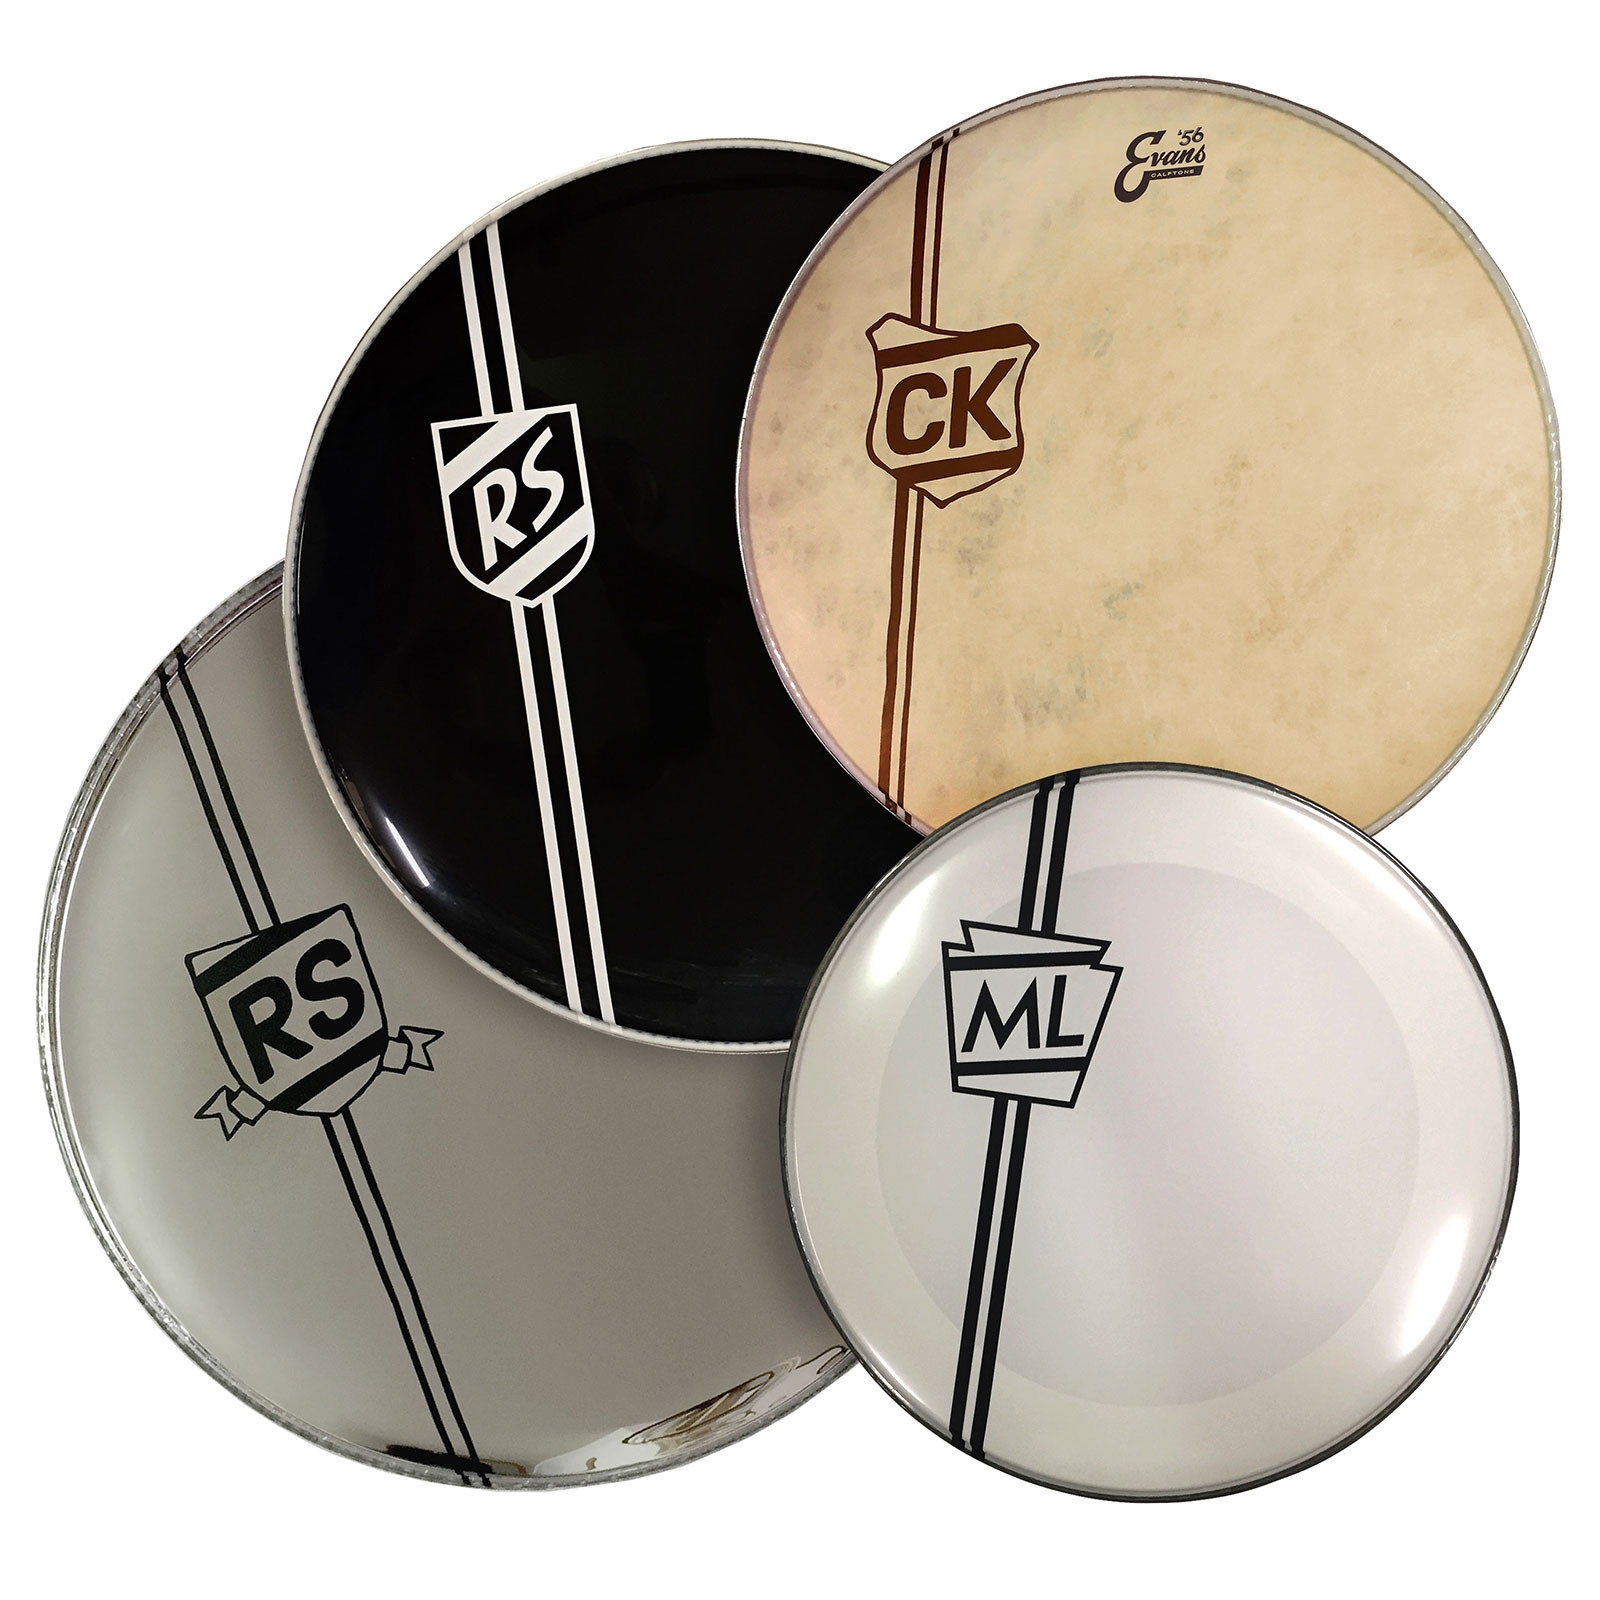 Drum Head Manufacturers : custom bass drum head shield logo drums on sale ~ Vivirlamusica.com Haus und Dekorationen